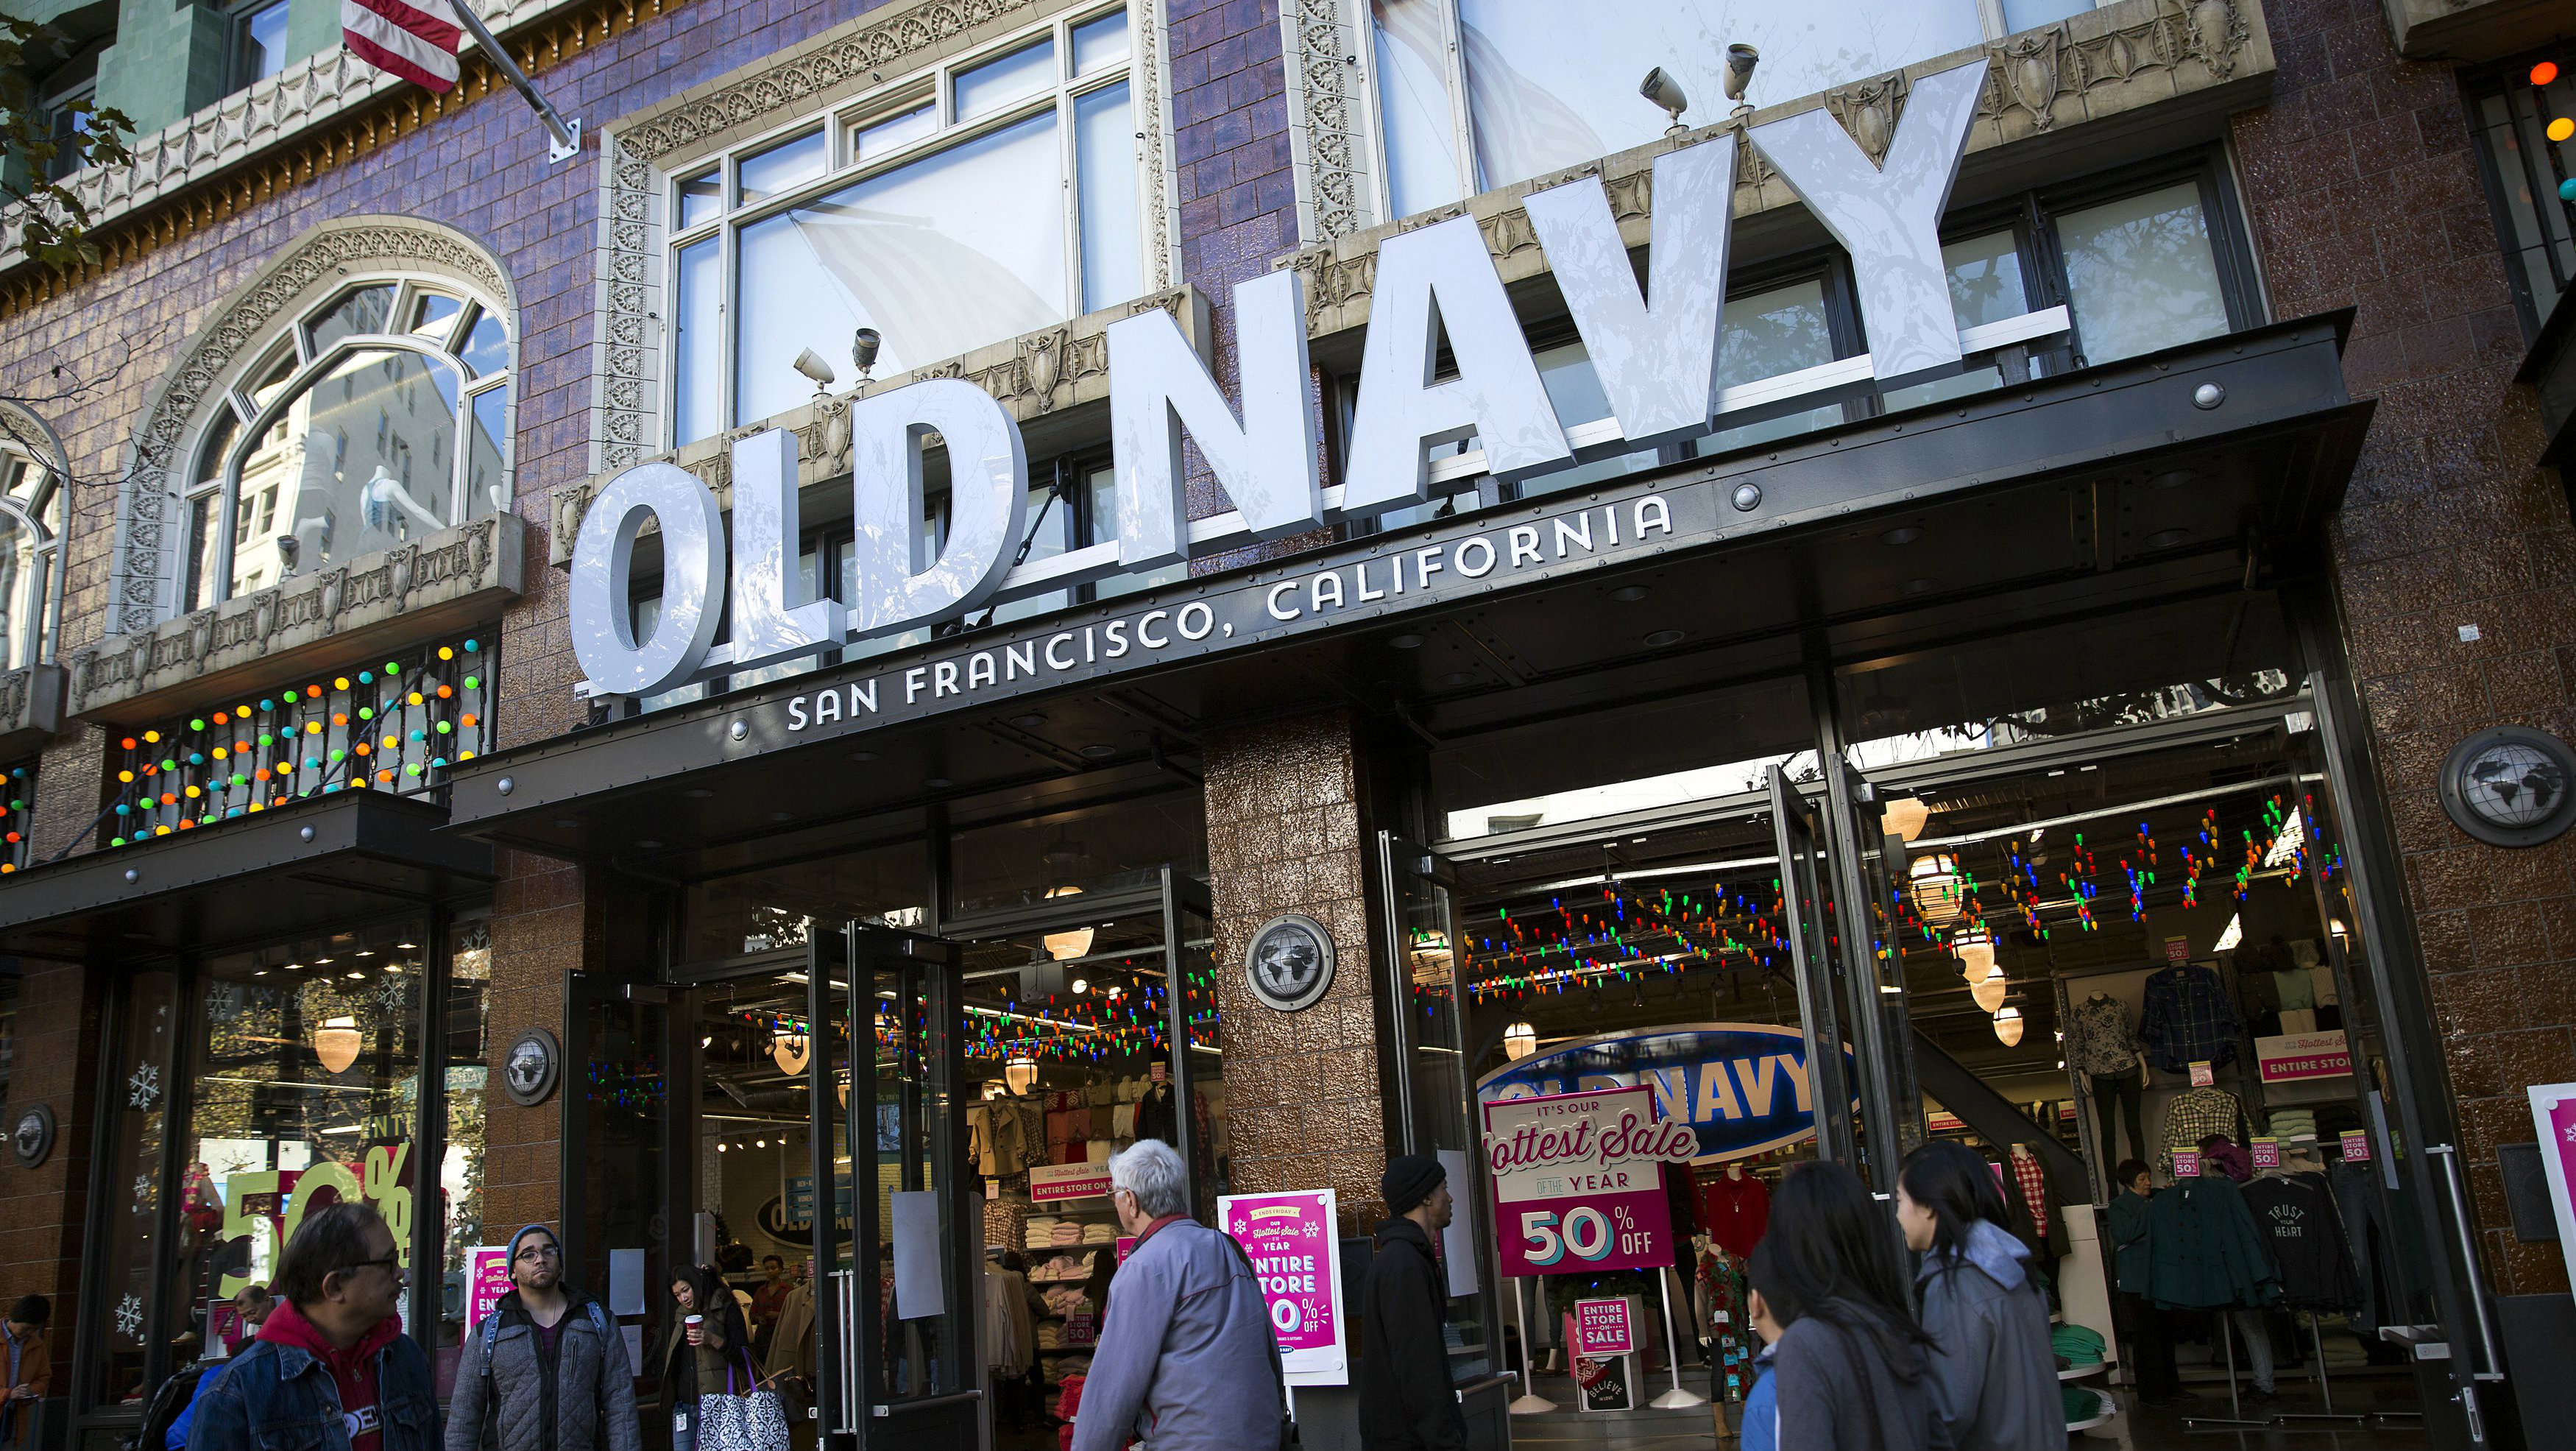 DATE IMPORTED:November 29, 2013People walk past an Old Navy store during Black Friday in San Francisco, California November 29, 2013. Black Friday, the day following the Thanksgiving Day holiday, has traditionally been the busiest shopping day in the United States. REUTERS/Stephen Lam